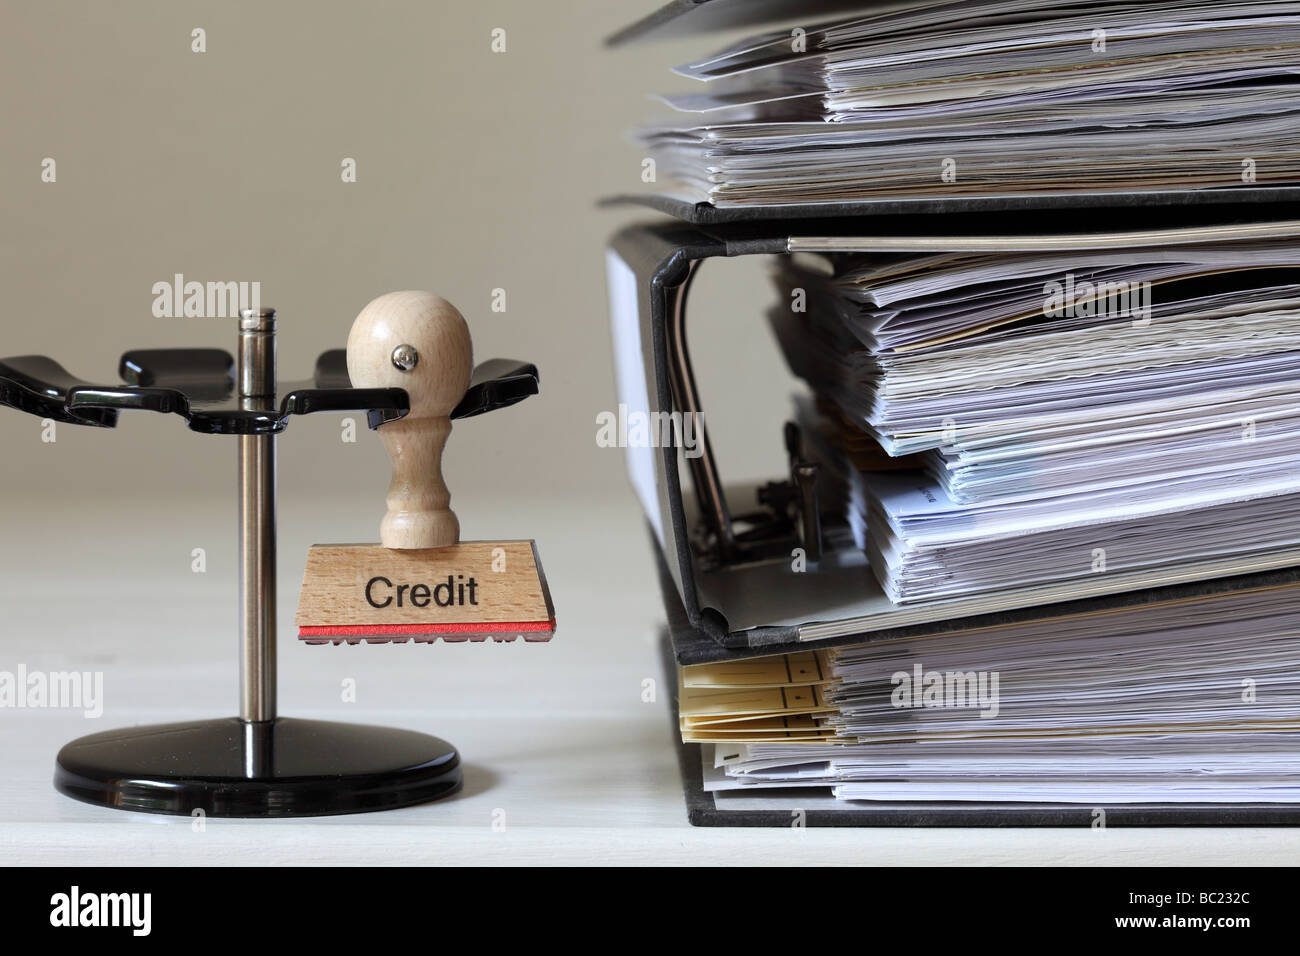 Stamp with inscription Credit next to a pile of files - Stock Image